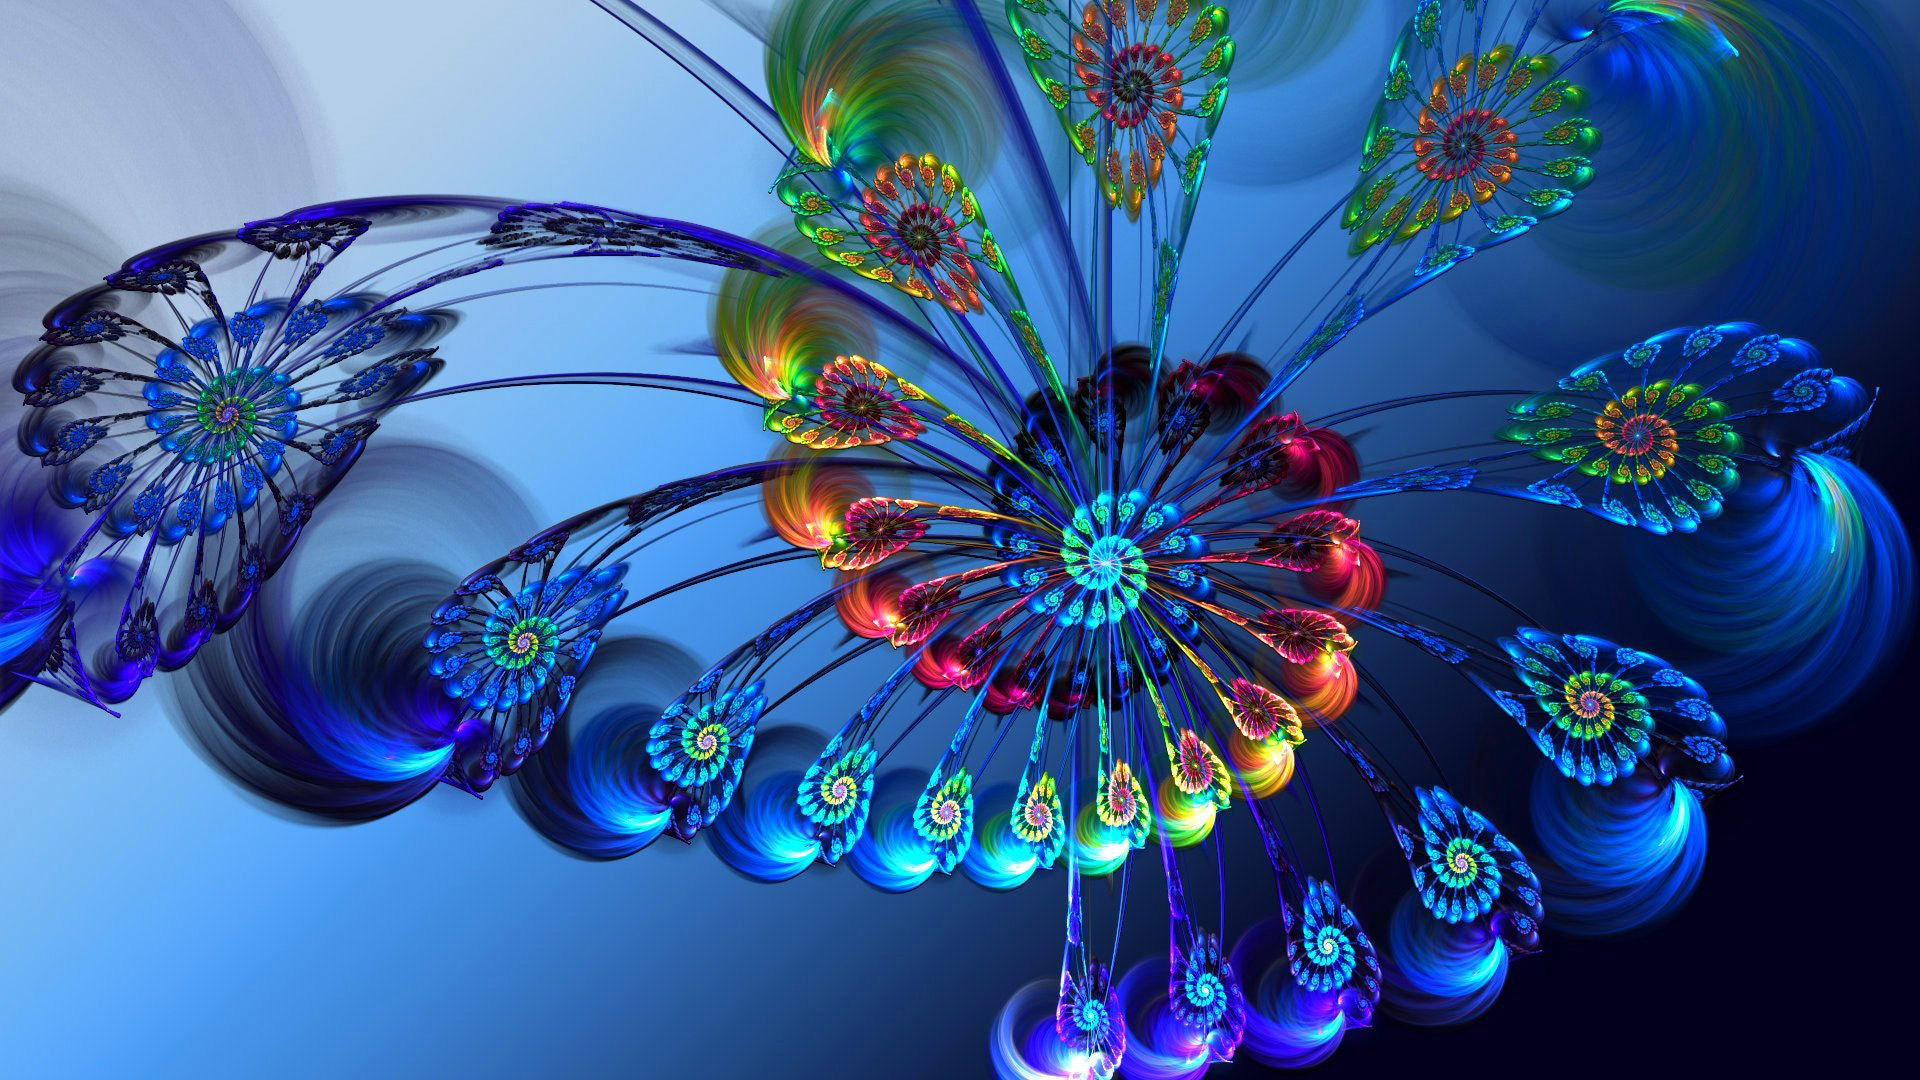 fractal abstract hd wallpaper wallpapers55com   Best Wallpapers for 1920x1080